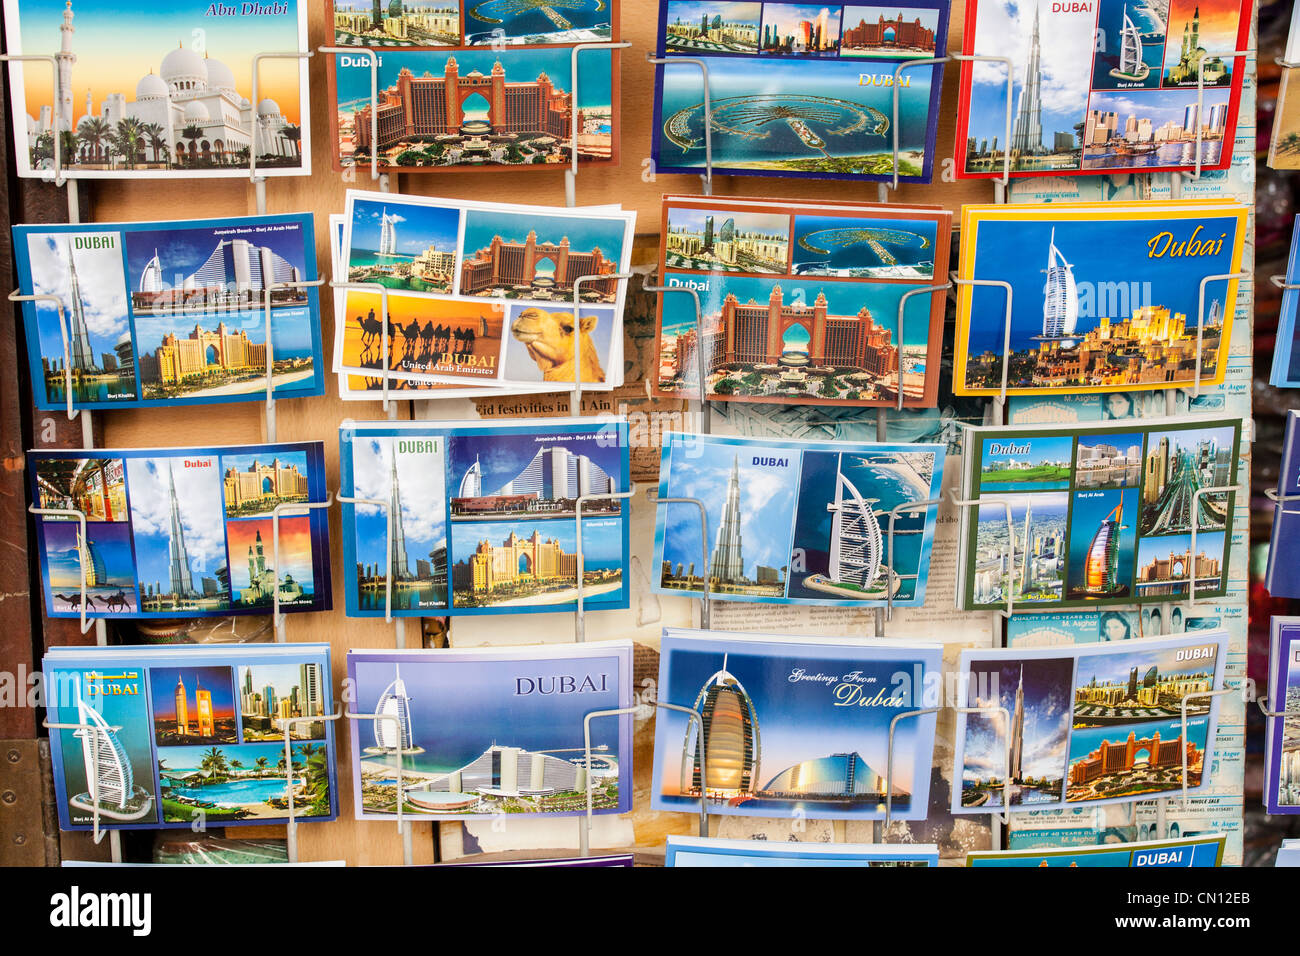 Postcards for sale in the Old Souk, Dubai - Stock Image